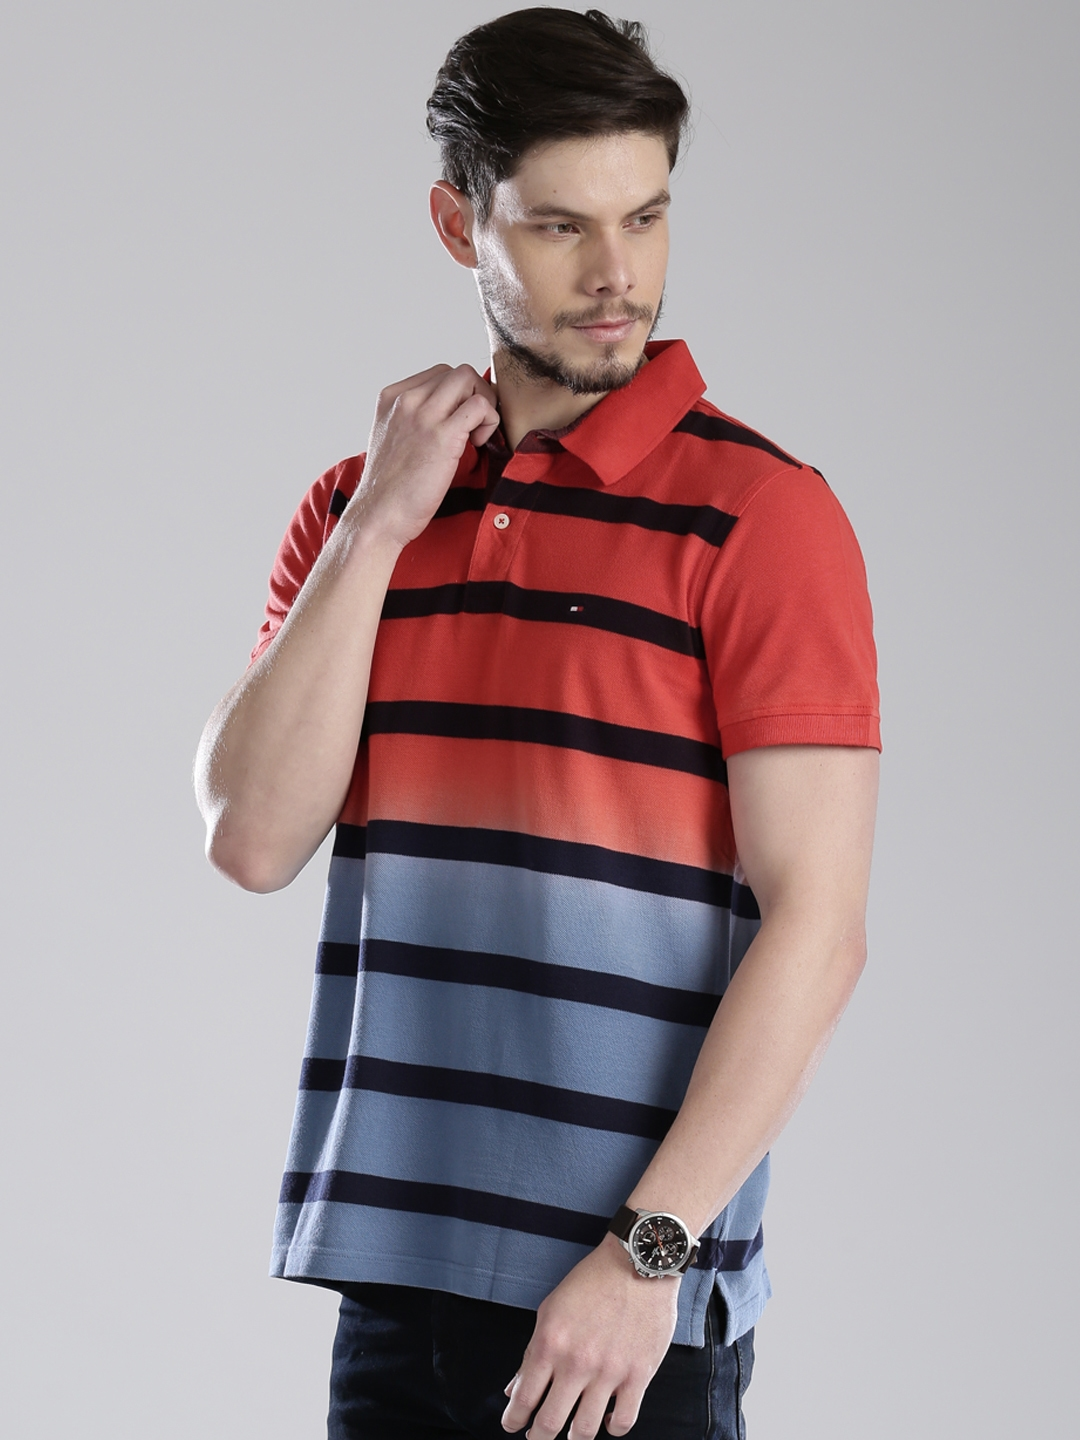 16a31e1014e Buy Tommy Hilfiger Red & Blue Striped Colourblock Polo T Shirt ...